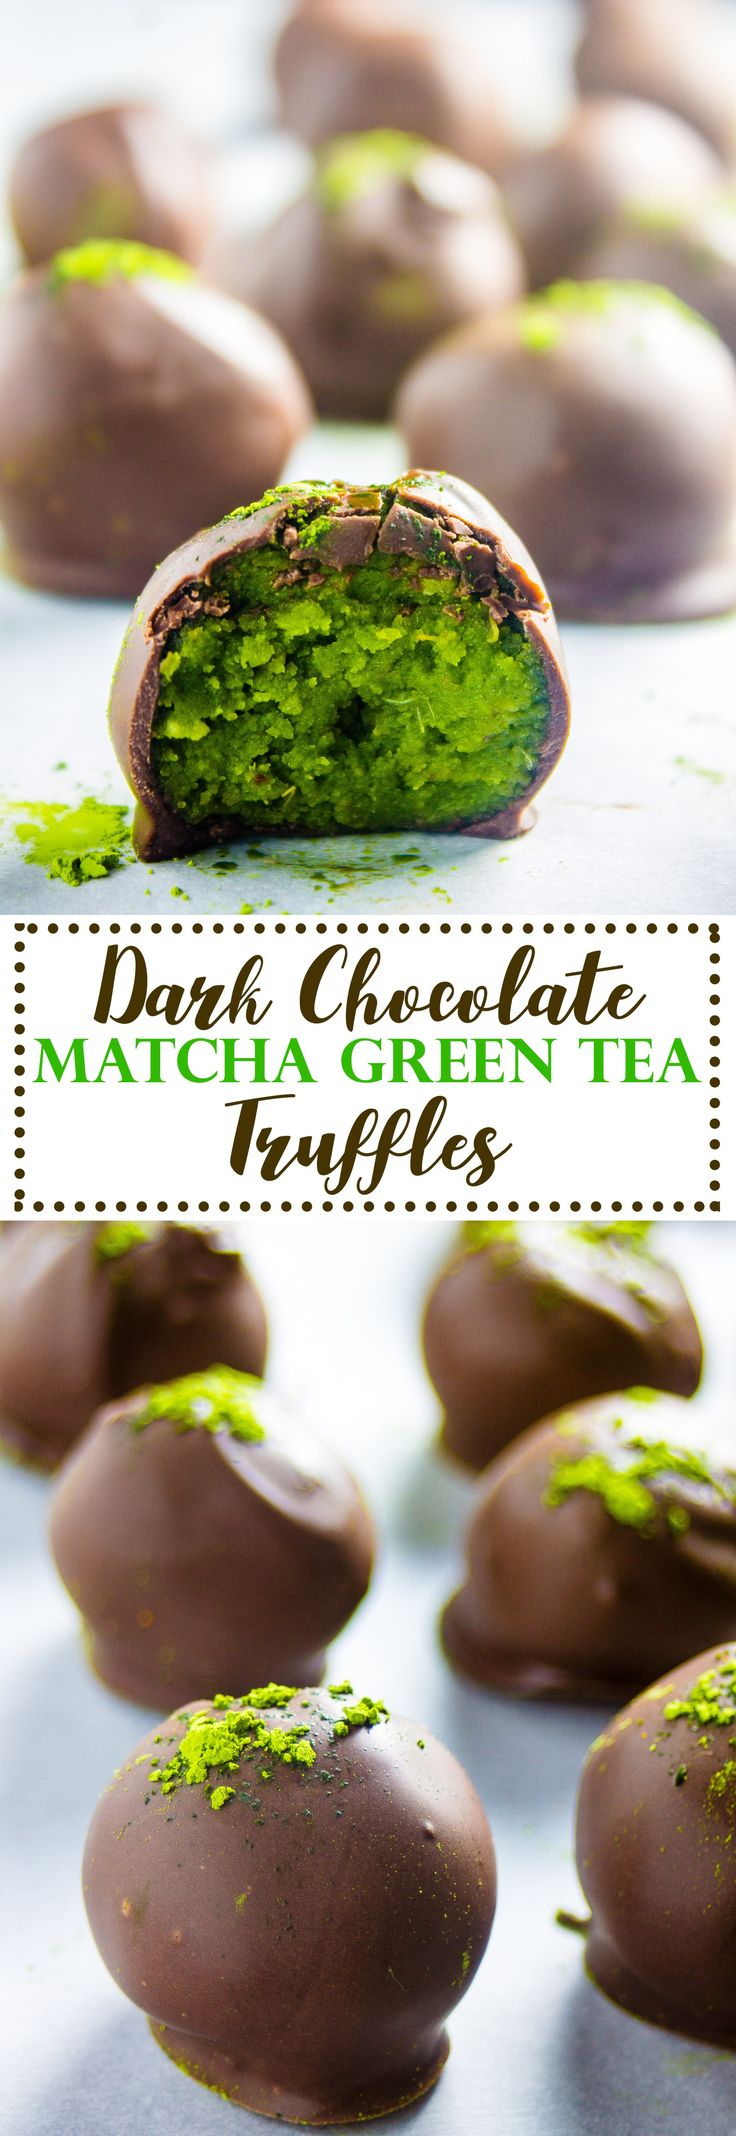 So, yes, by now you may know that I have a matcha obsession. It's pretty clear if you look at some of my other recipes –Matcha Overnight Oats & Mint Matcha Smoothie). Matcha is just too damn delicious to not put it in basically everything- your smoothies, your baked goods, and yes, your truffles. Matcha …